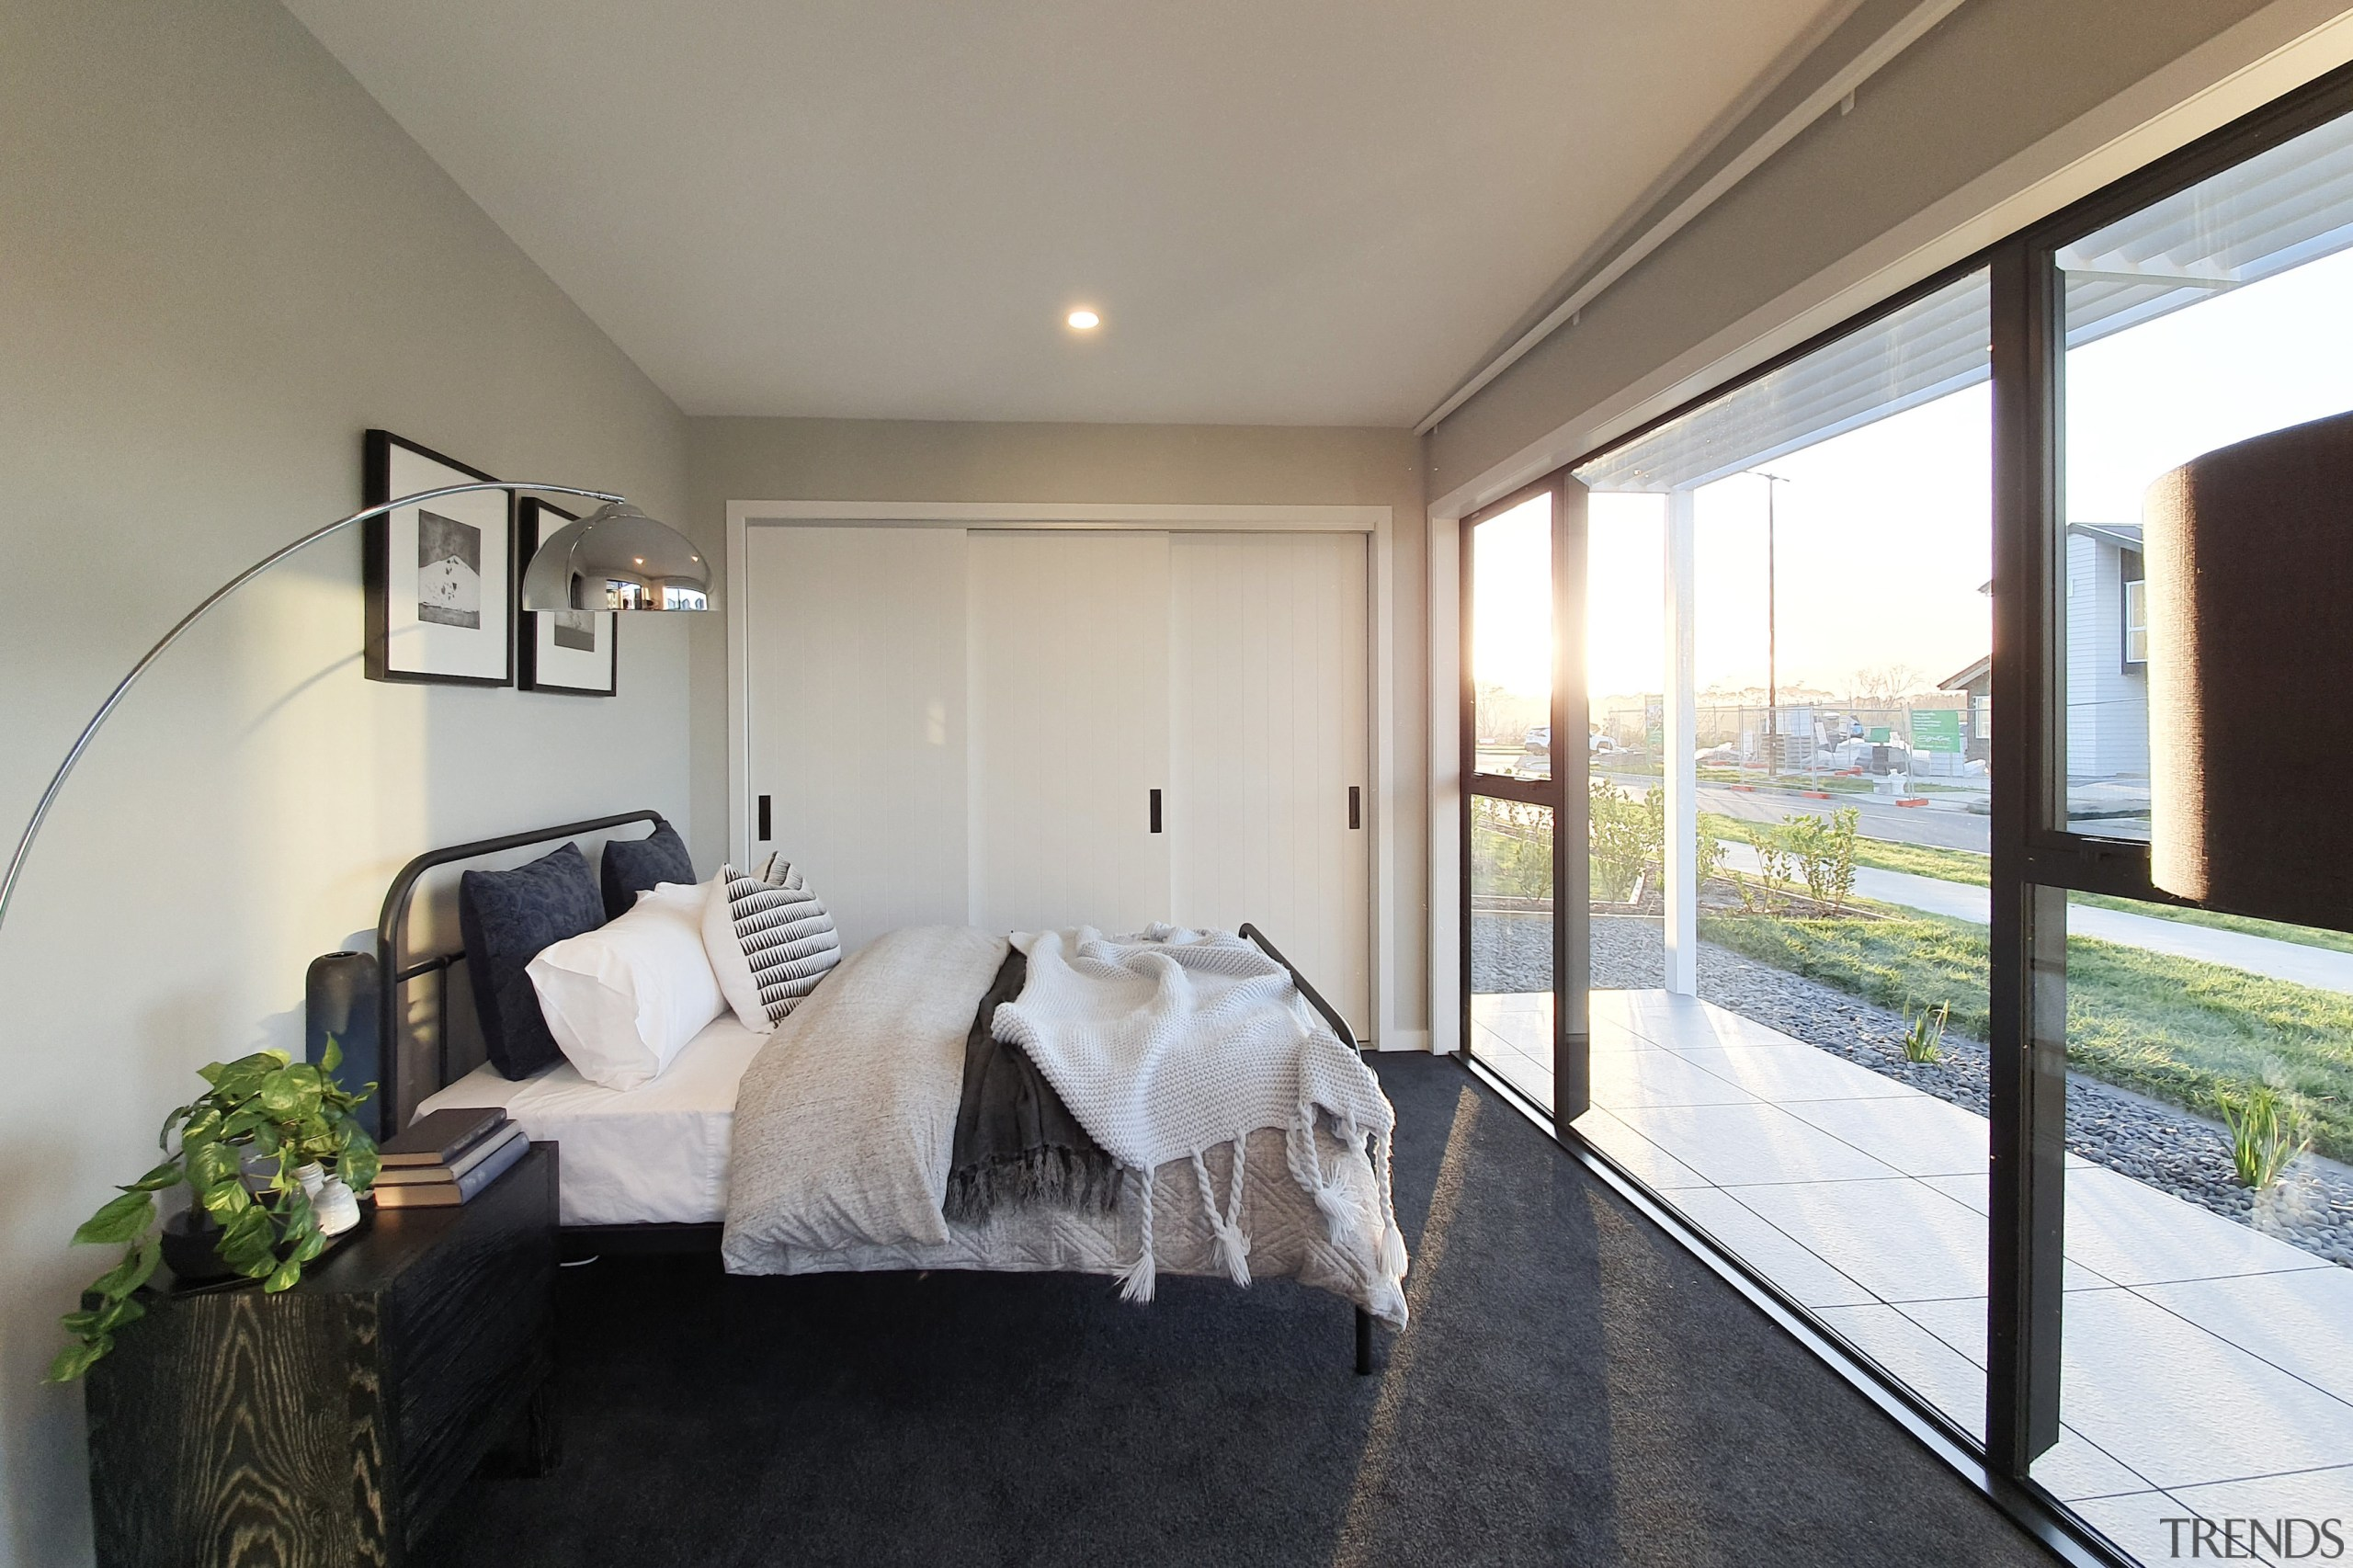 External louvres and wall-sized windows allow for plenty